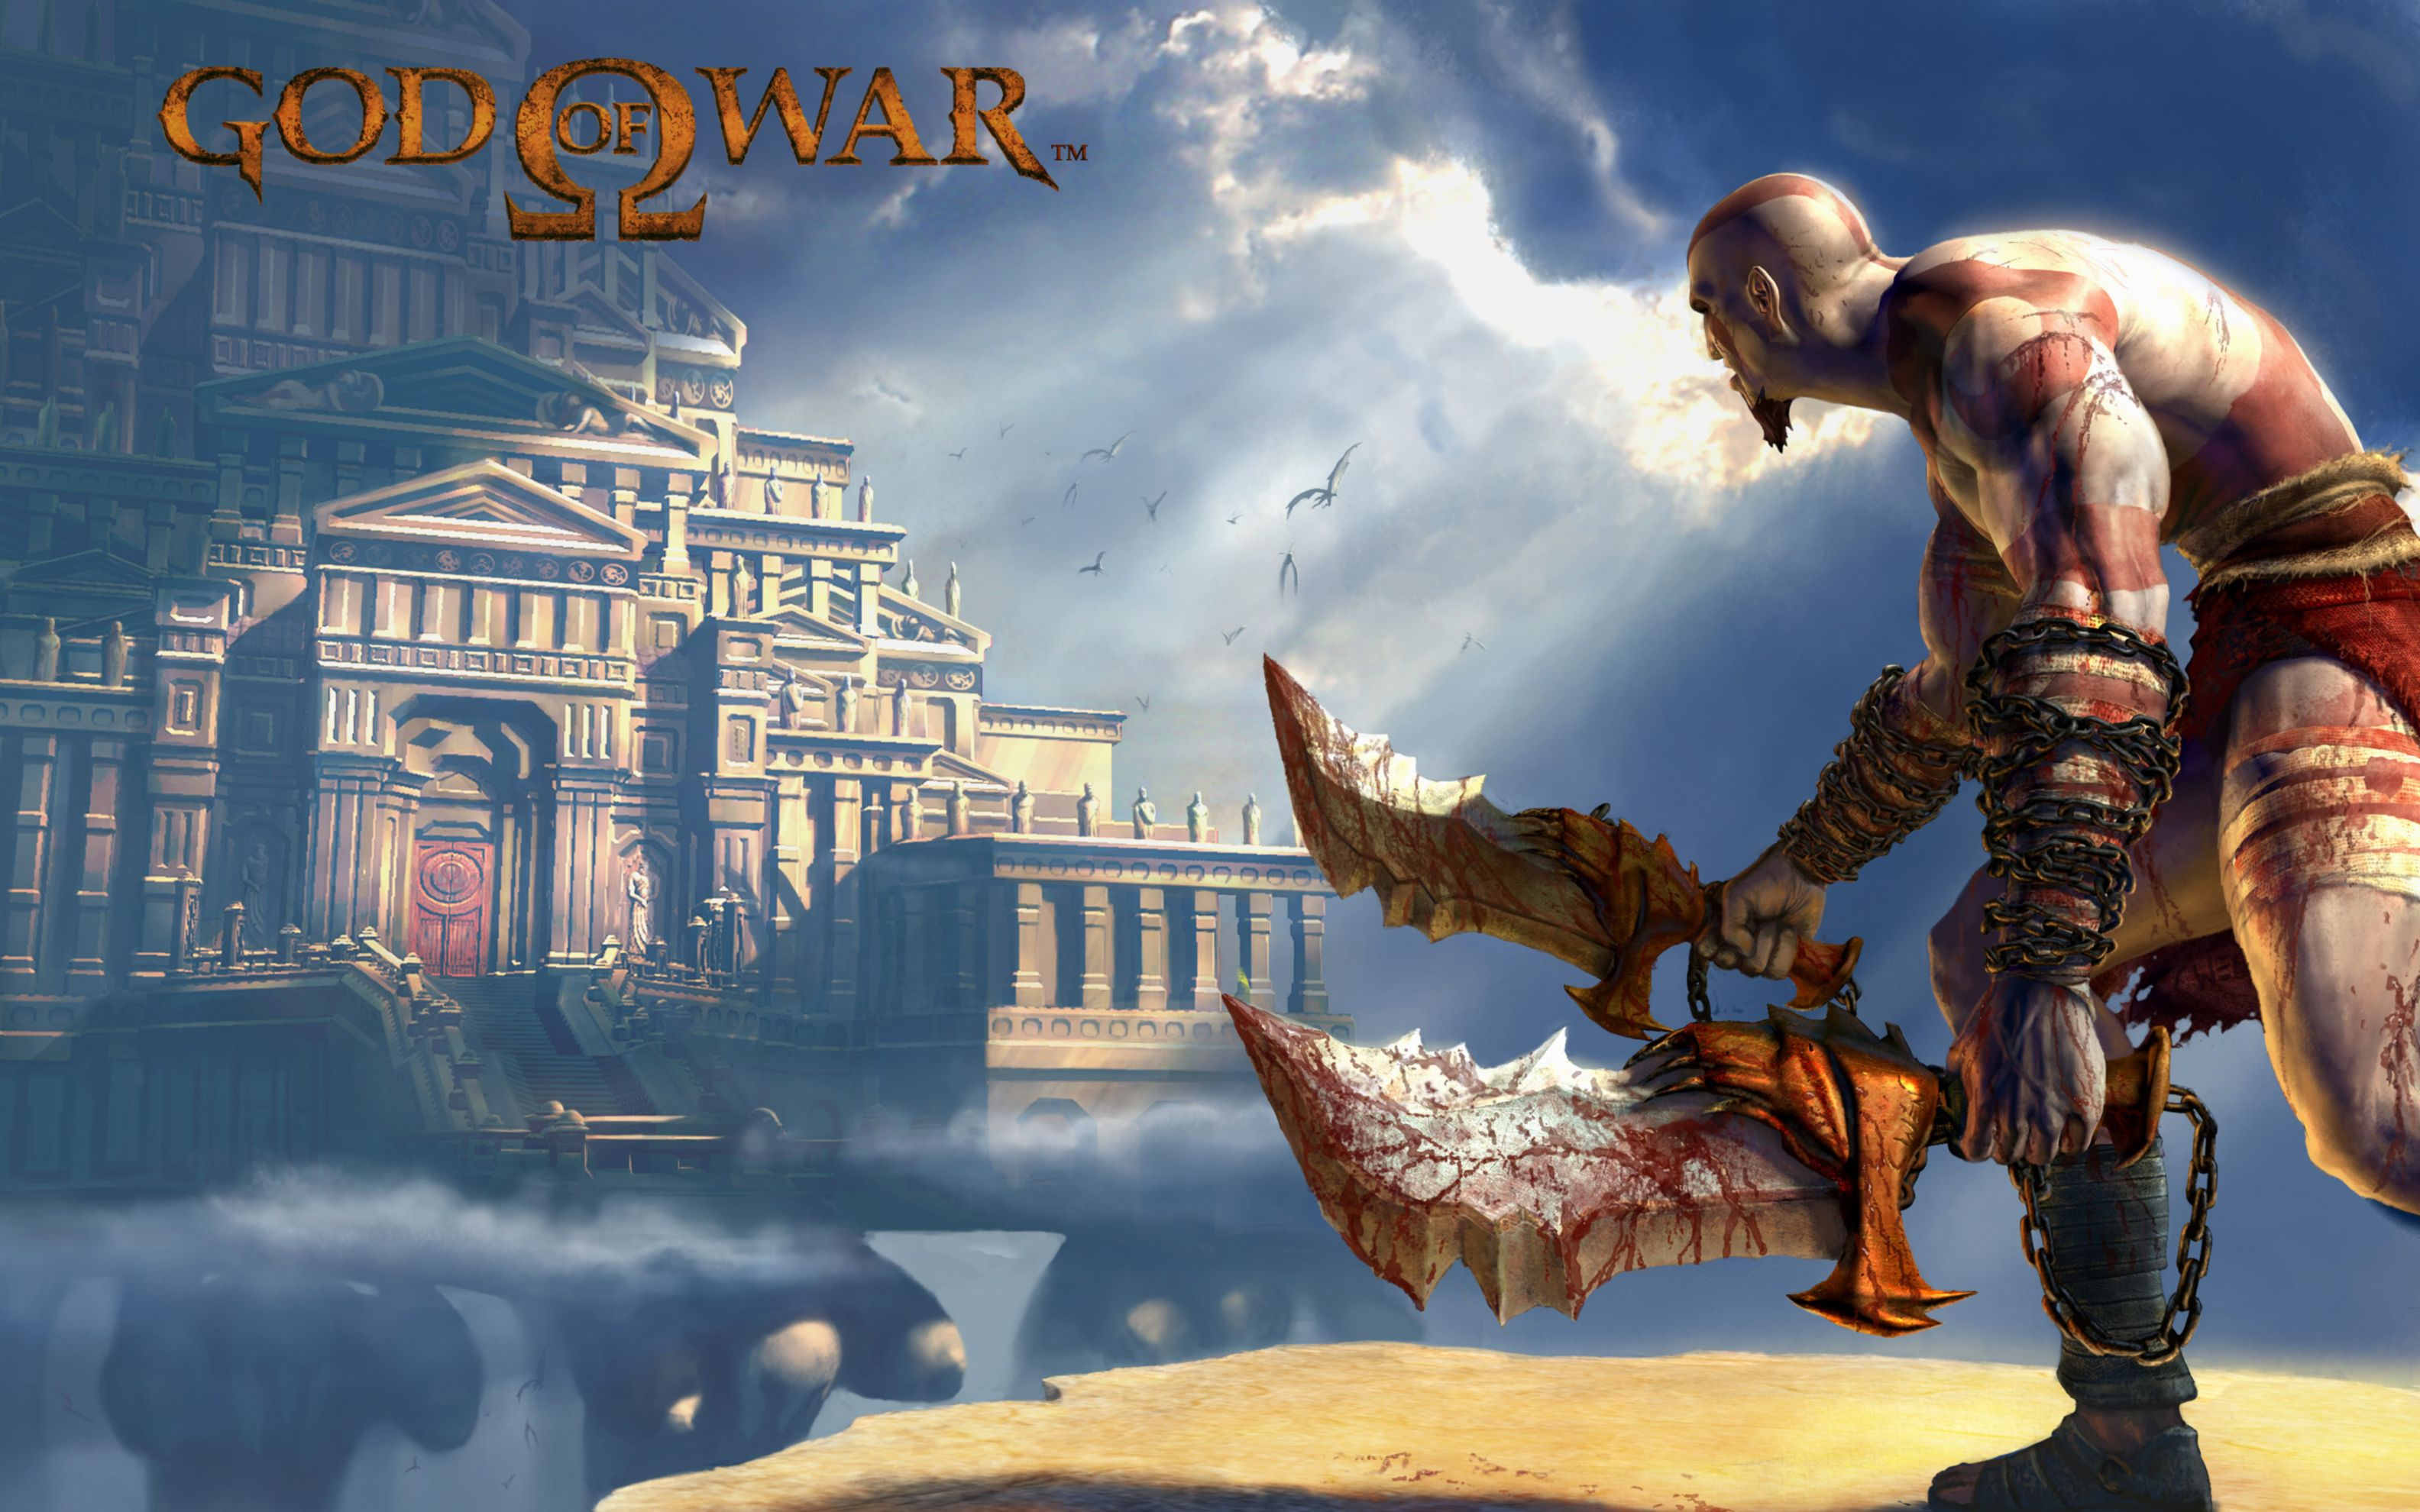 Download free HD God of War 2 Game Wide Wallpaper, image